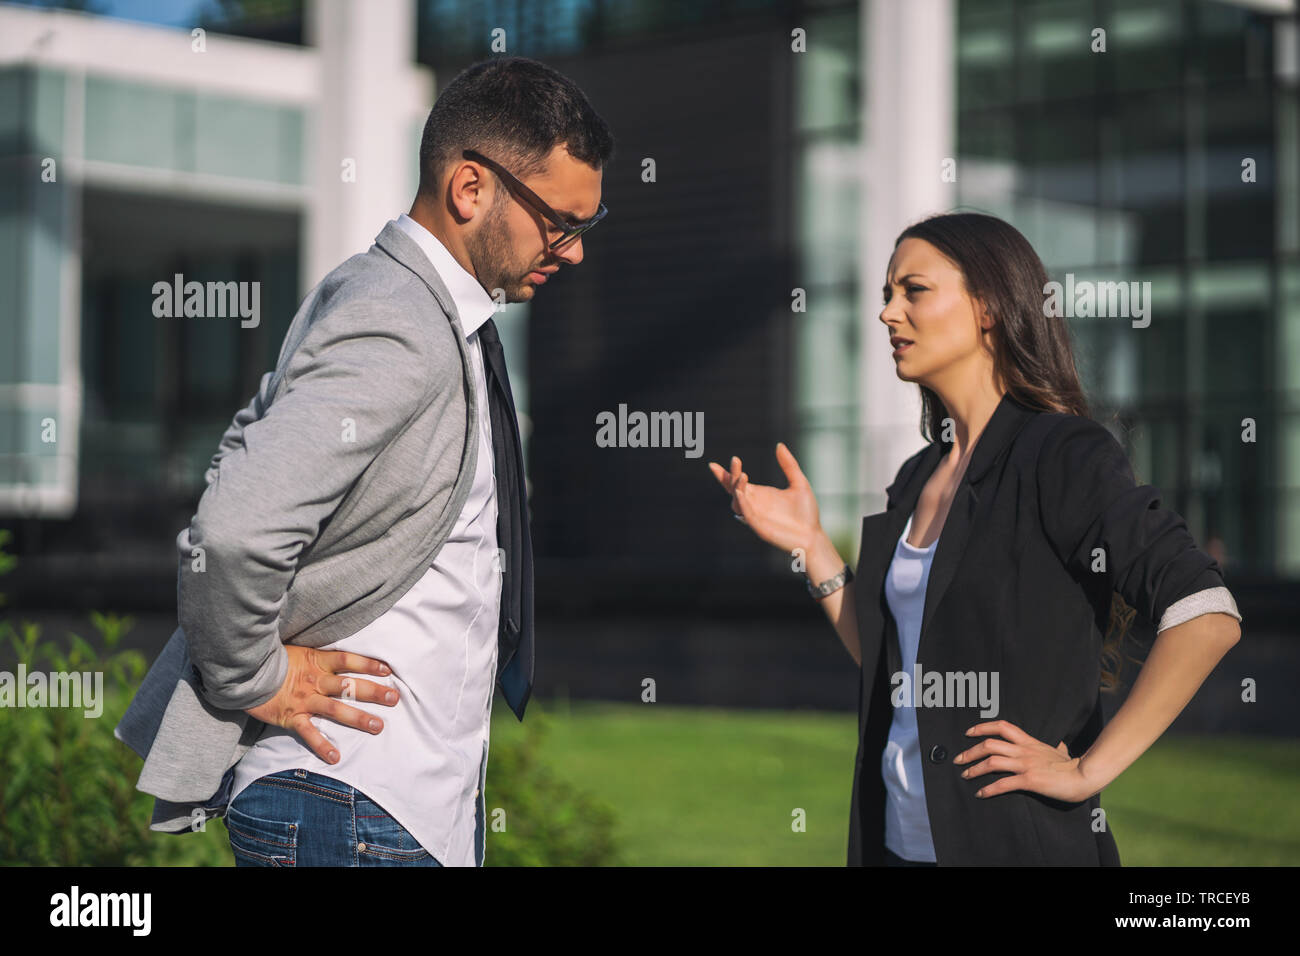 Overworked businessman is talking to colleague after work. - Stock Image